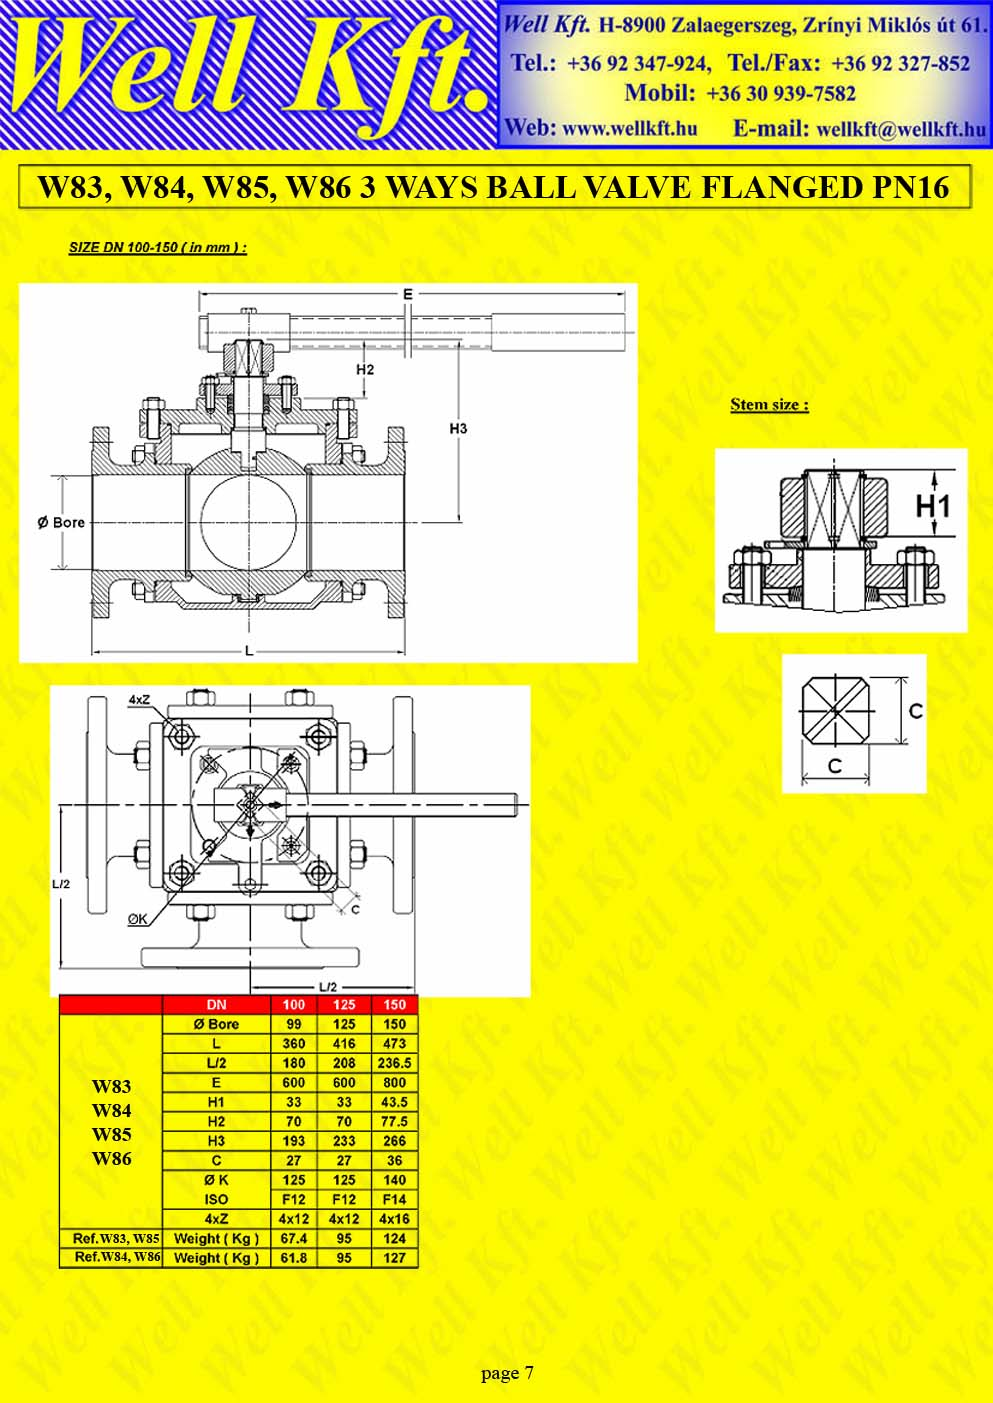 3 ways ball valve stainless steel, carbon steel flanged PN 16 (7.)